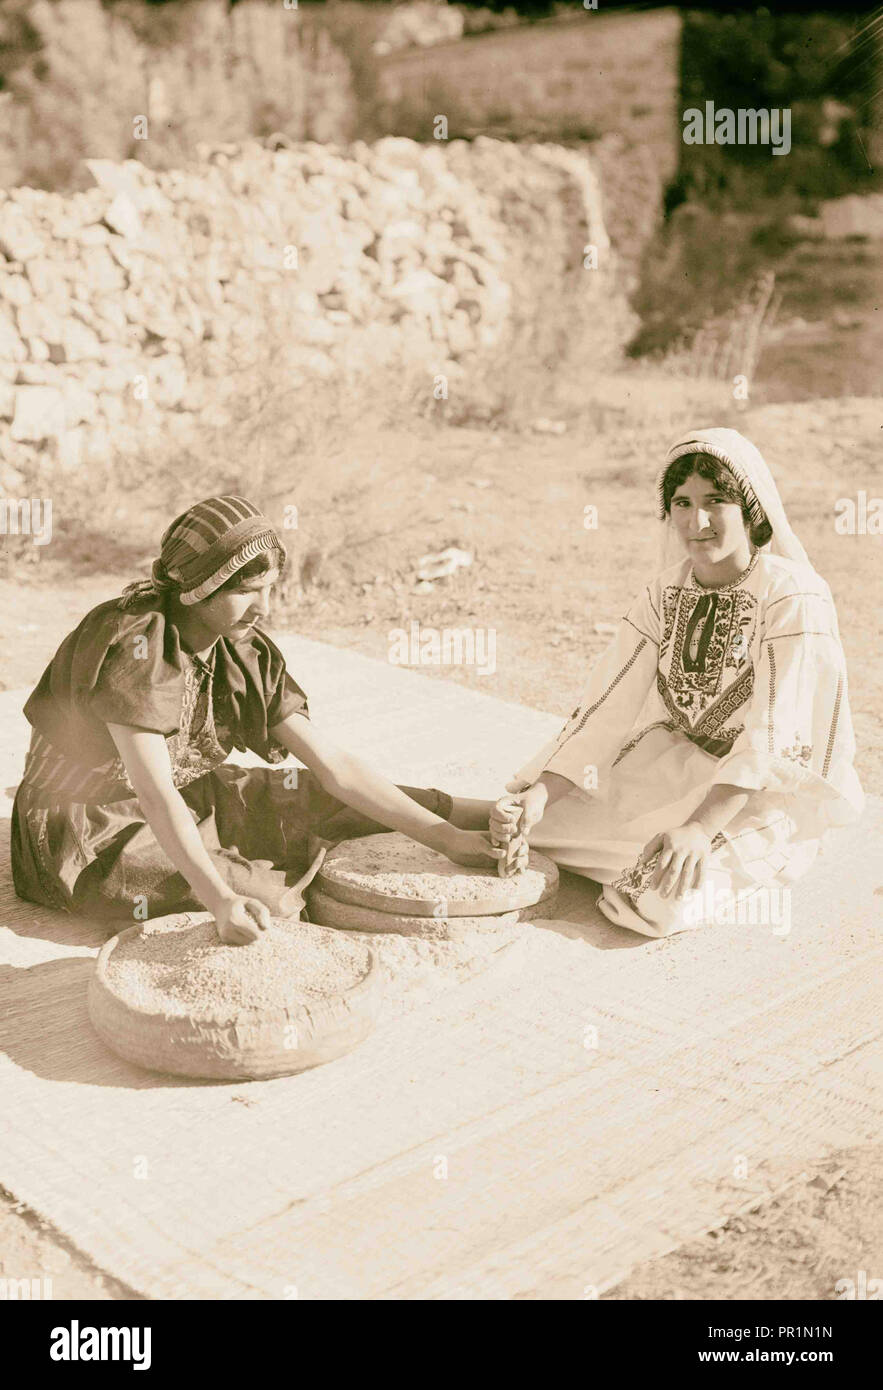 Arab women working primitive grain mill 1898, Middle East, Israel and/or Palestine - Stock Image